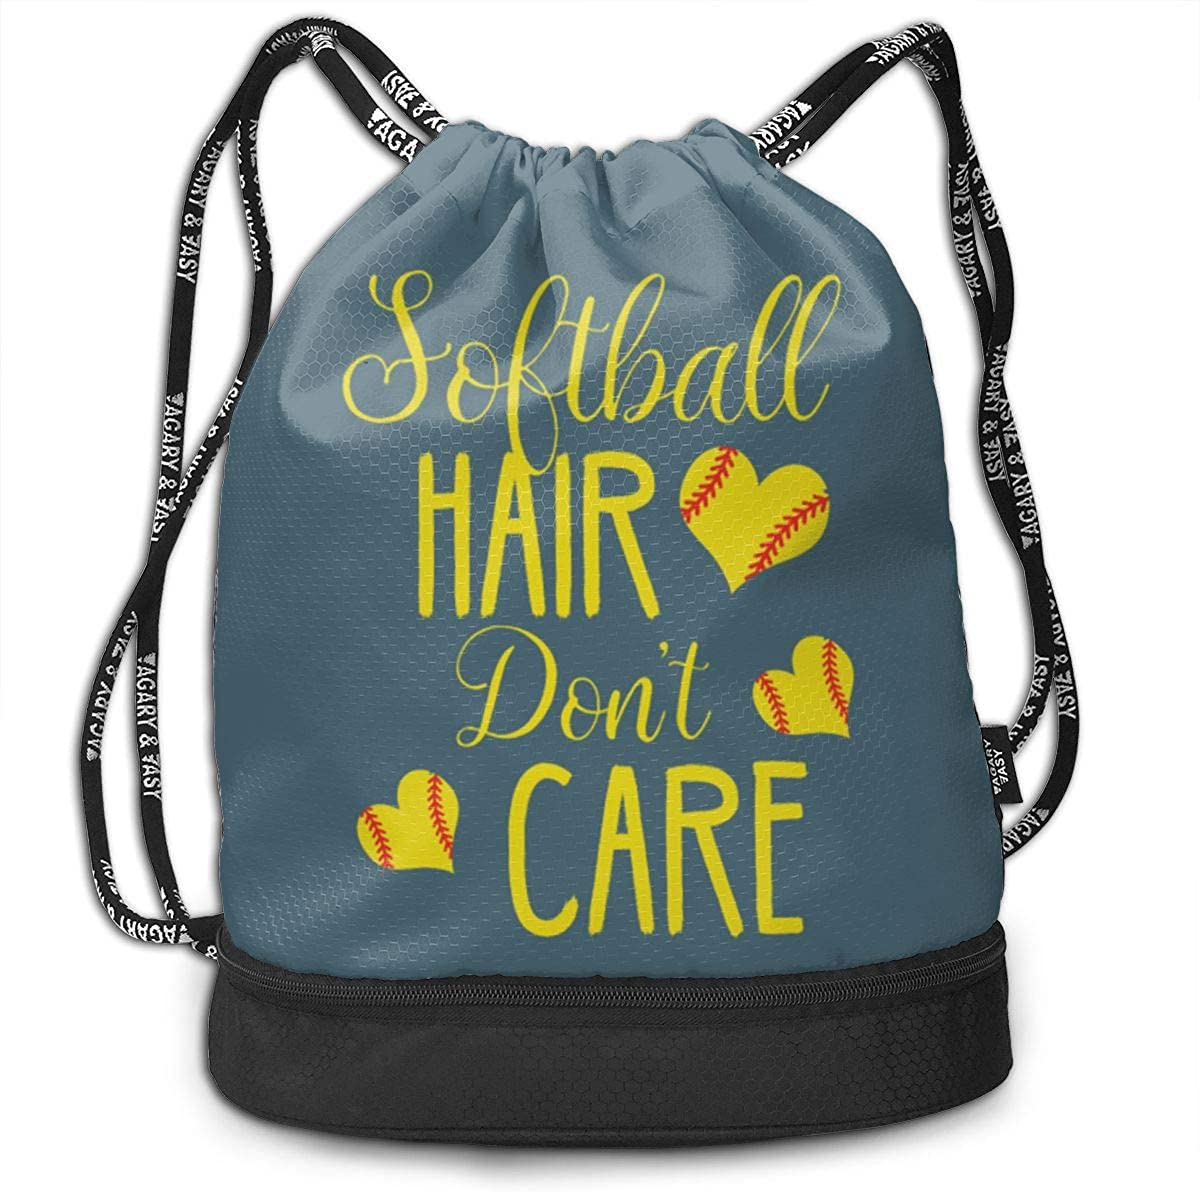 Softball Hair Don't Care Drawstring Backpack Compartment Sport Bag